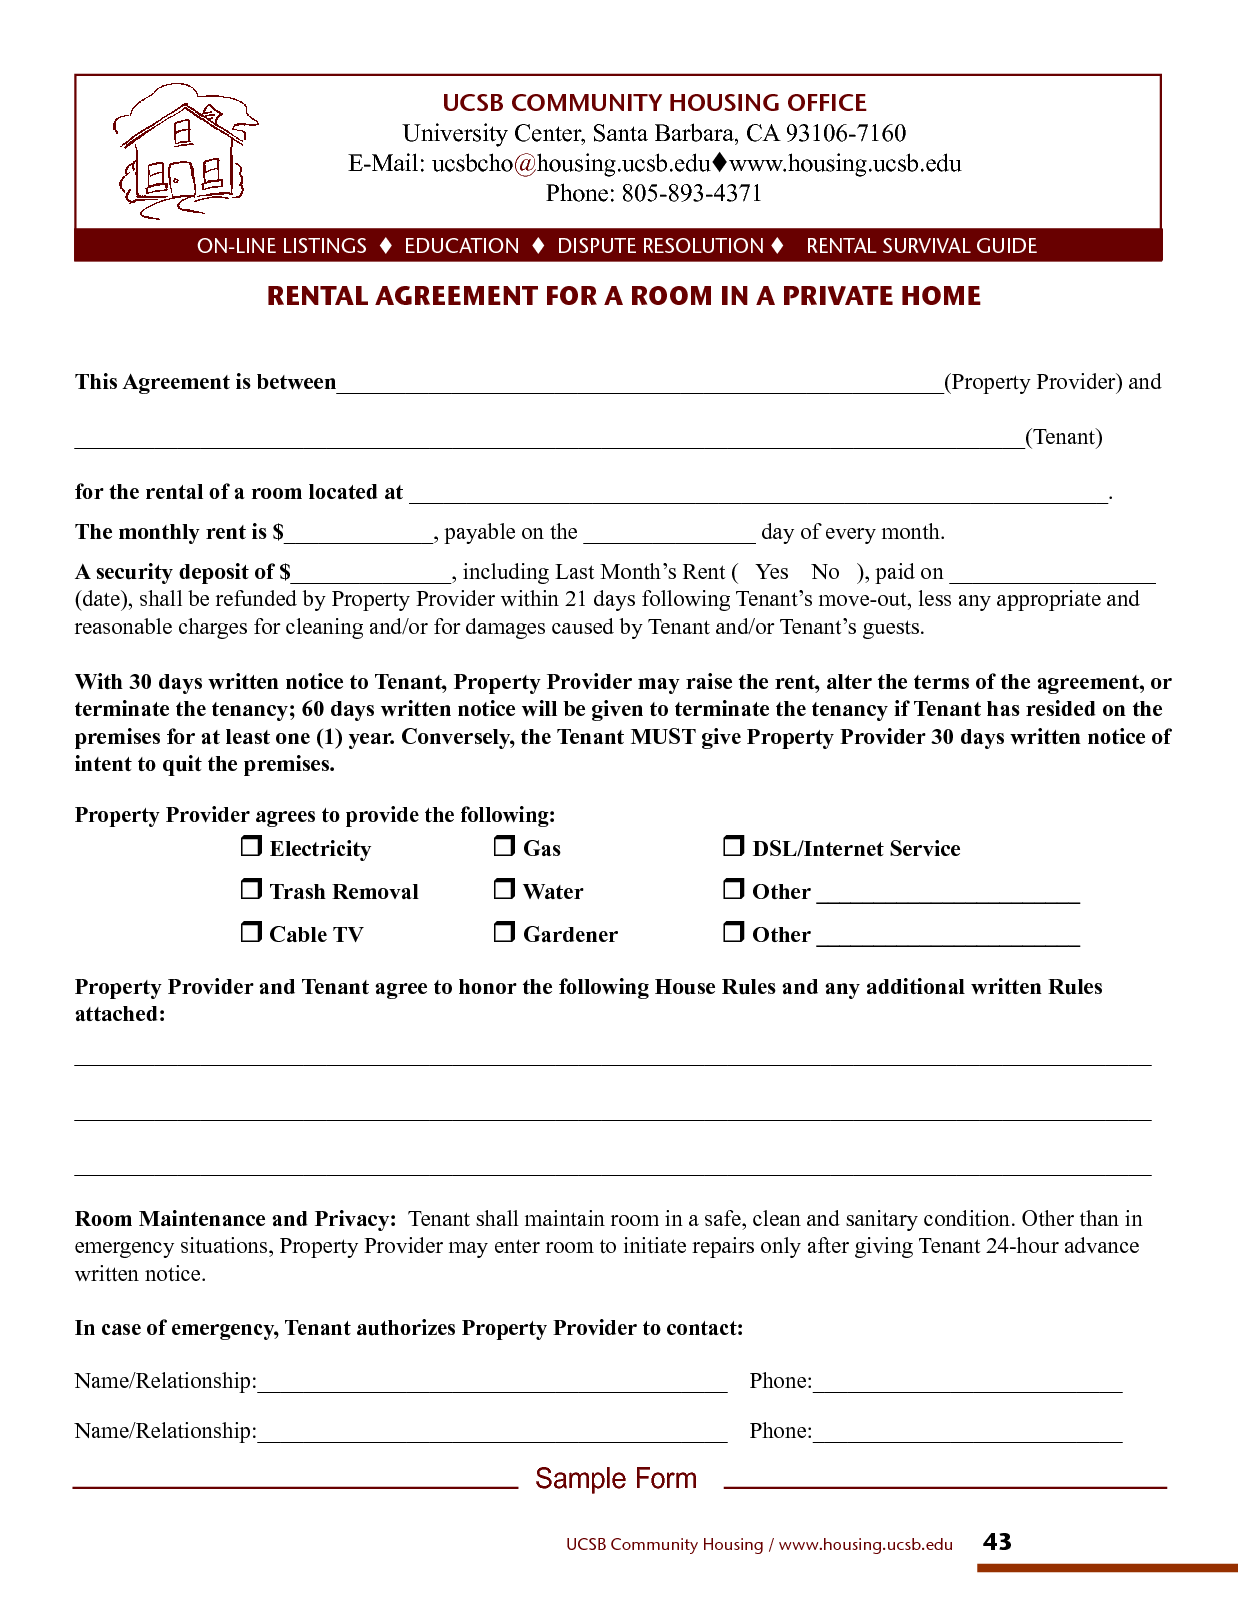 Home Rental Lease Agreements For Private Room Room Rental Agreement Template Rental Agreement Templates Room Rental Agreement Lease Agreement Free Printable